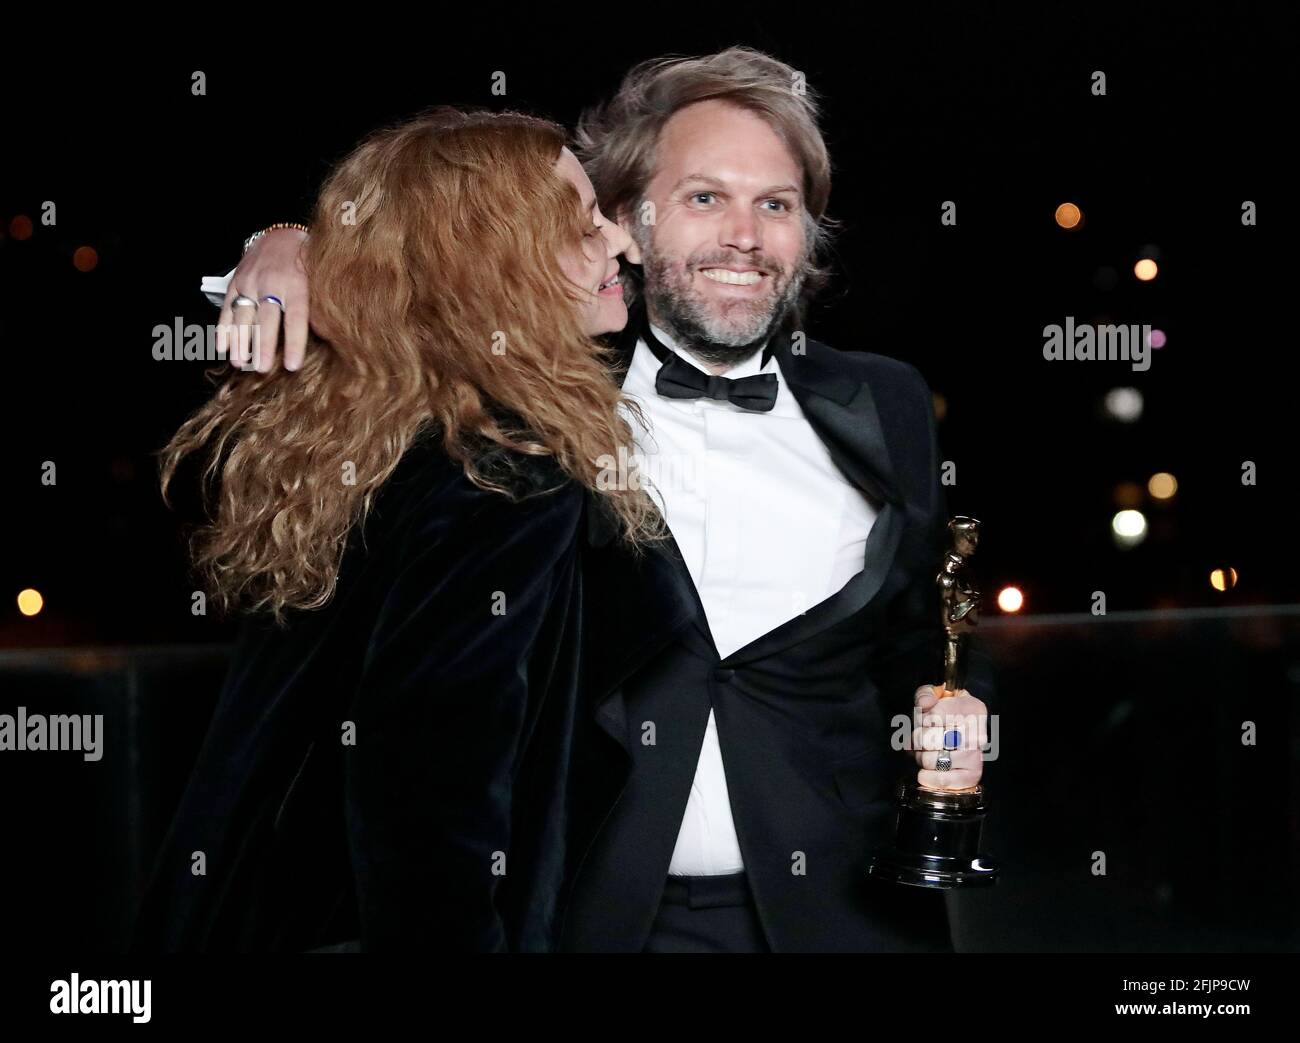 """Florian Zeller embraces Marine Delterme as he holds his Oscars statuette after winning the Best Adapted Screenplay for the """"The Father"""" at a screening of the Oscars in Paris, France April 26, 2021. Lewis Joly/Pool via REUTERS Stock Photo"""